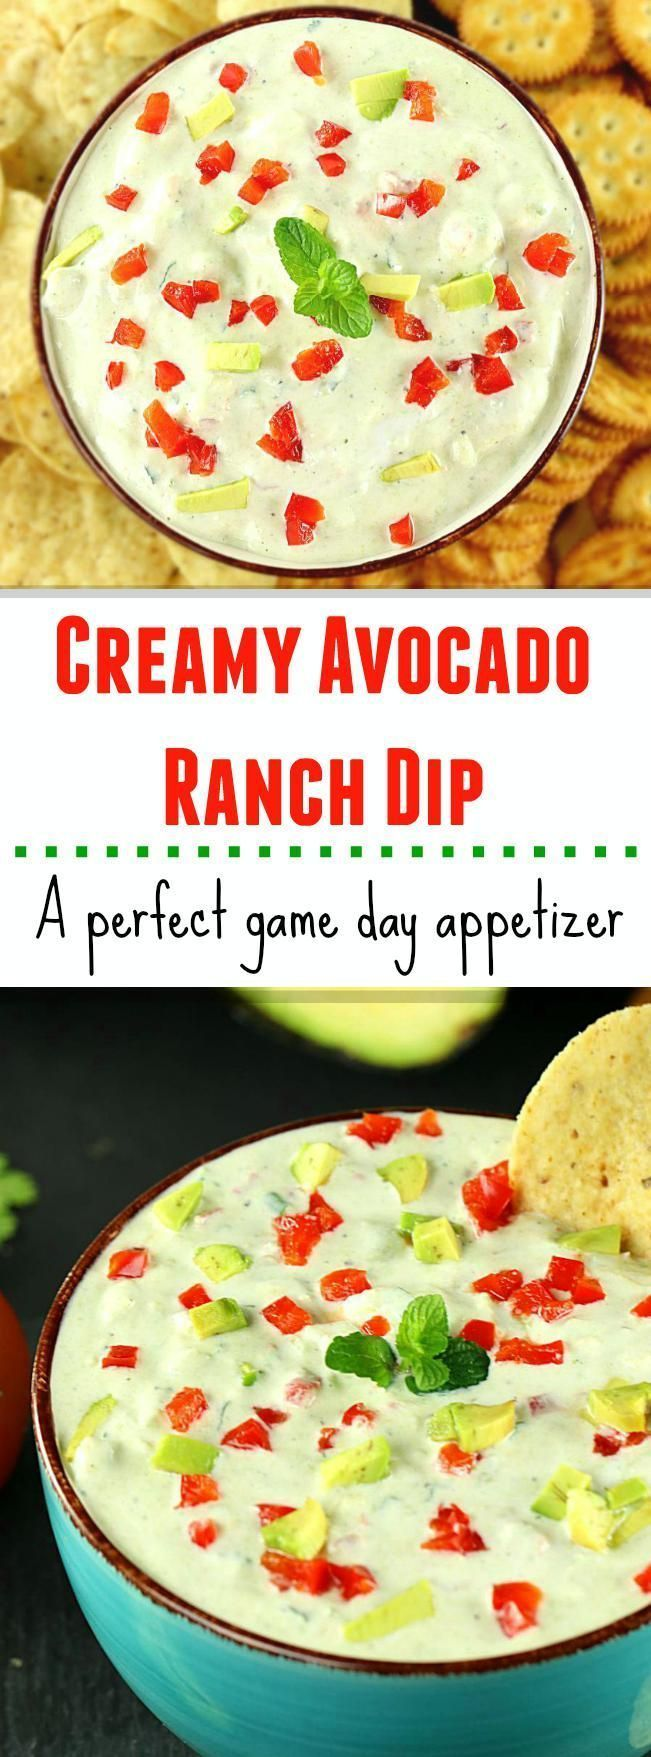 A healthy and Creamy Avocado Ranch Dip is fairly simple to make and is a great appetizer for parties or game day. Bring in your tortilla chips or fresh cut veggies and see them disappear!